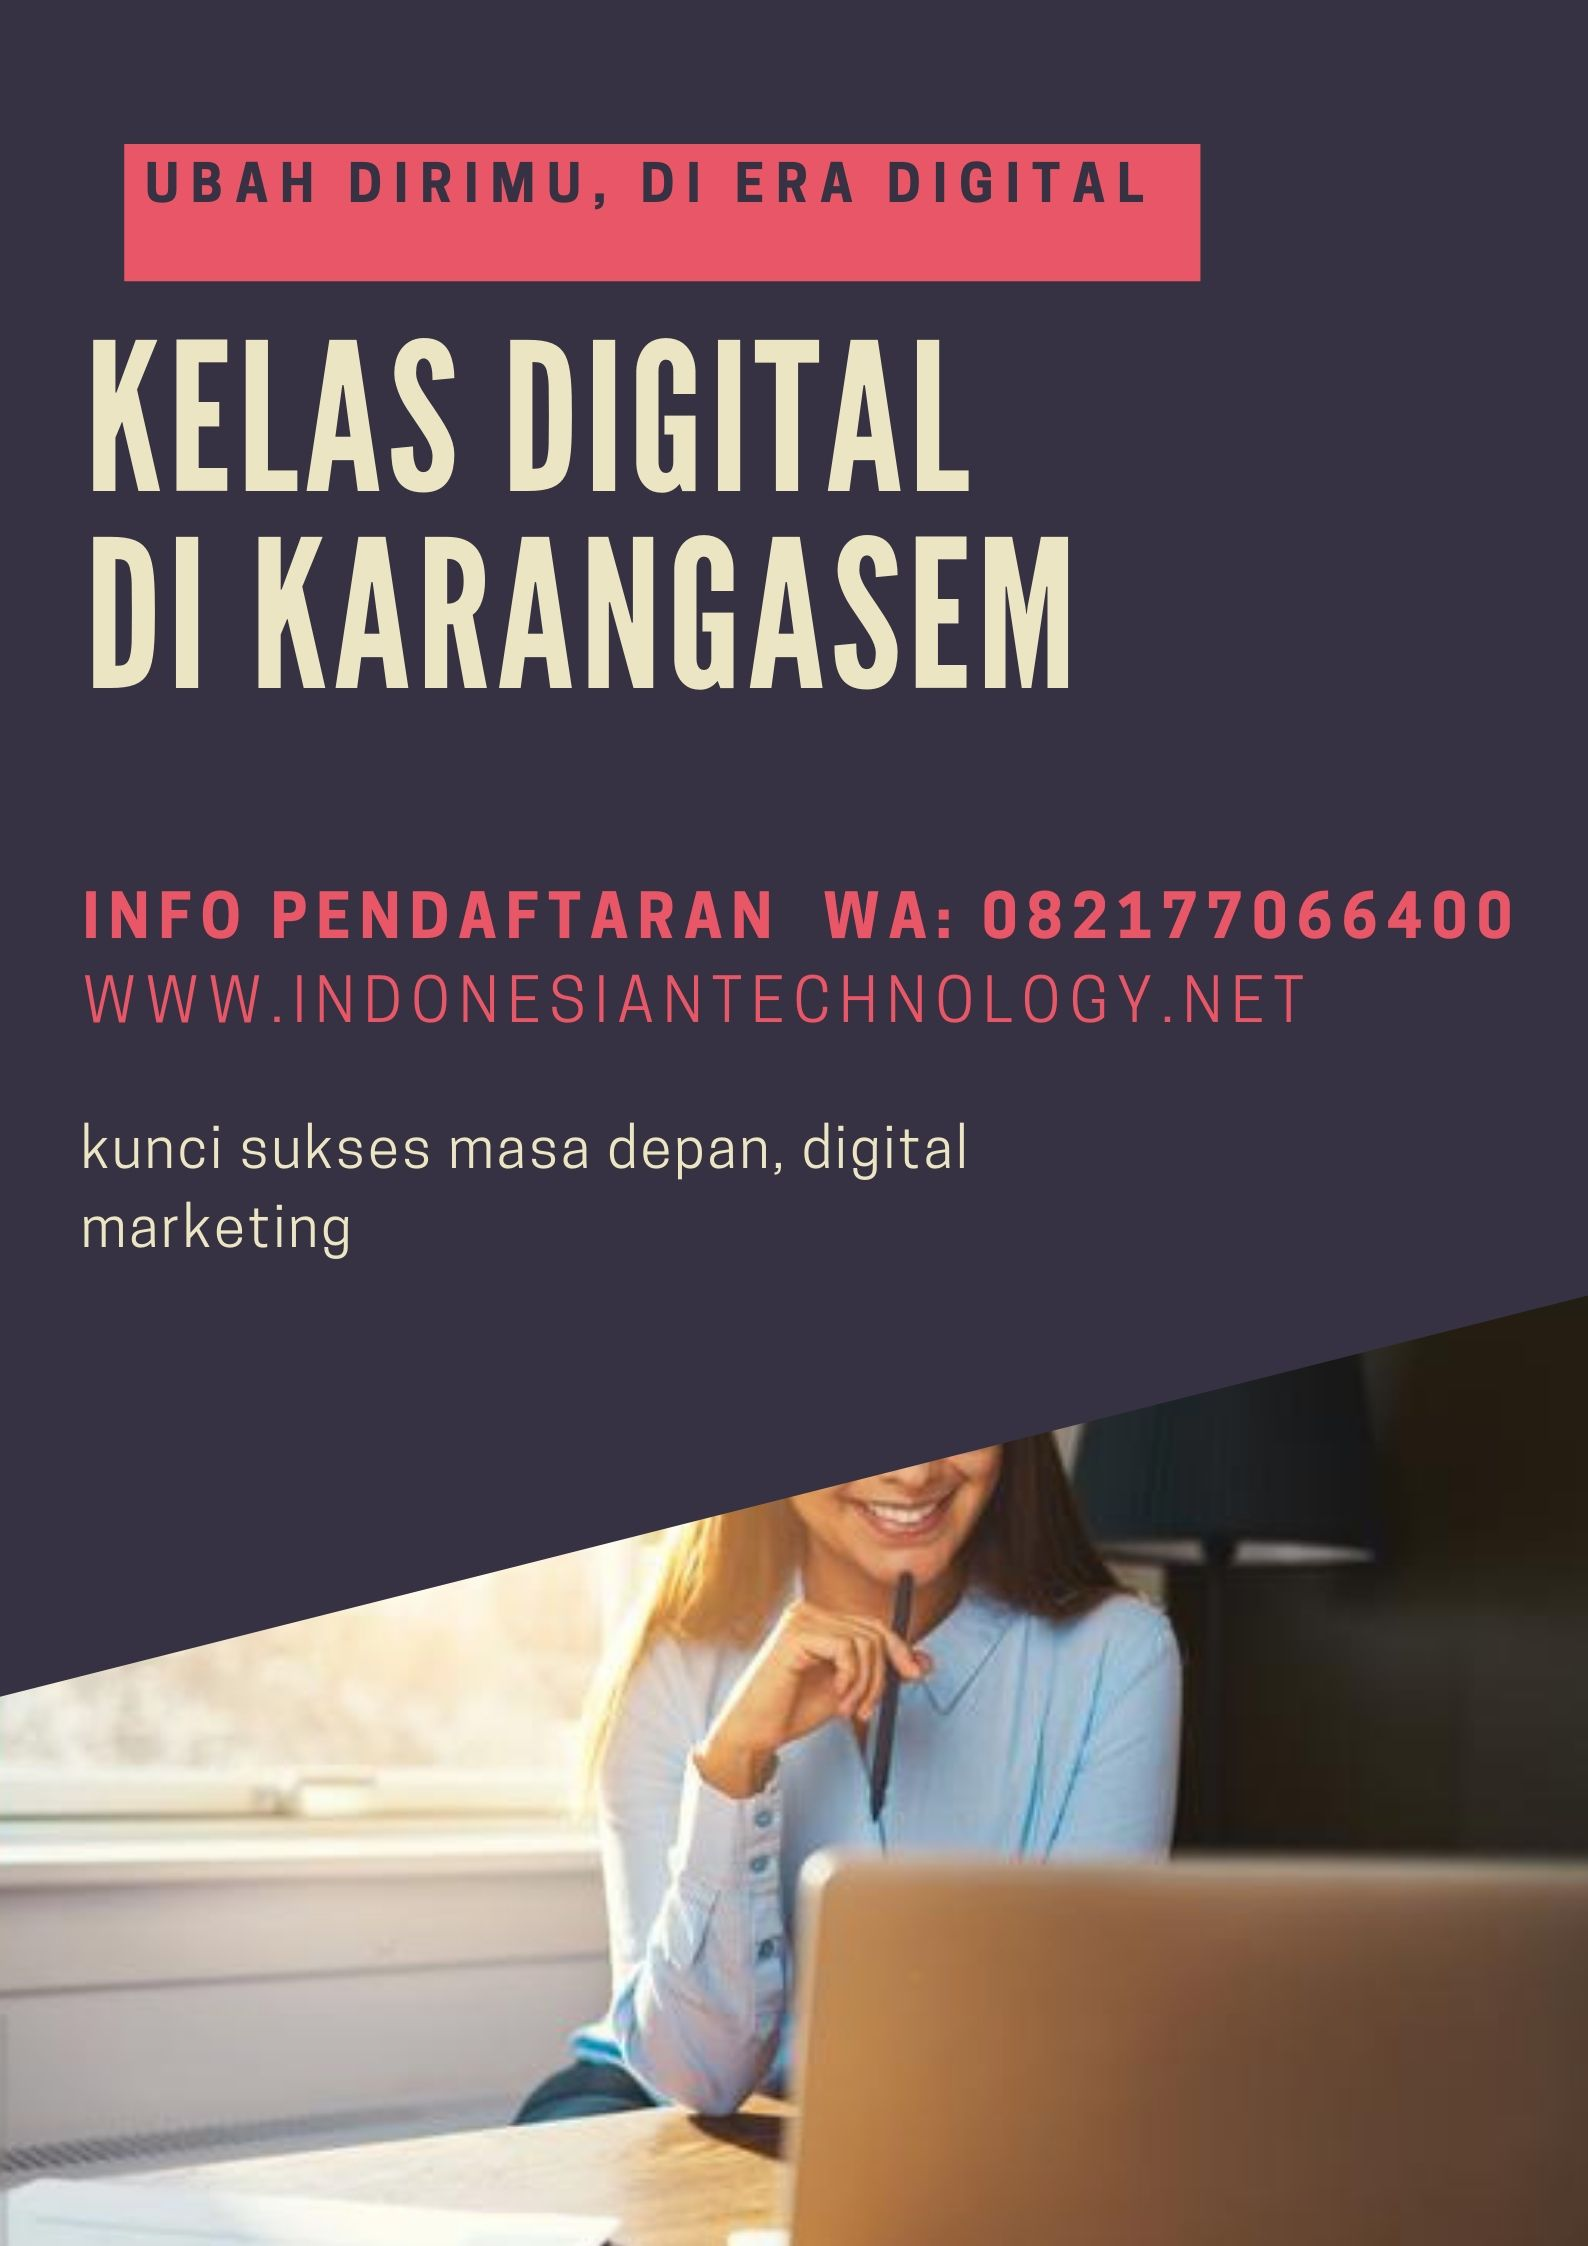 digital-marketing-di-karangasem